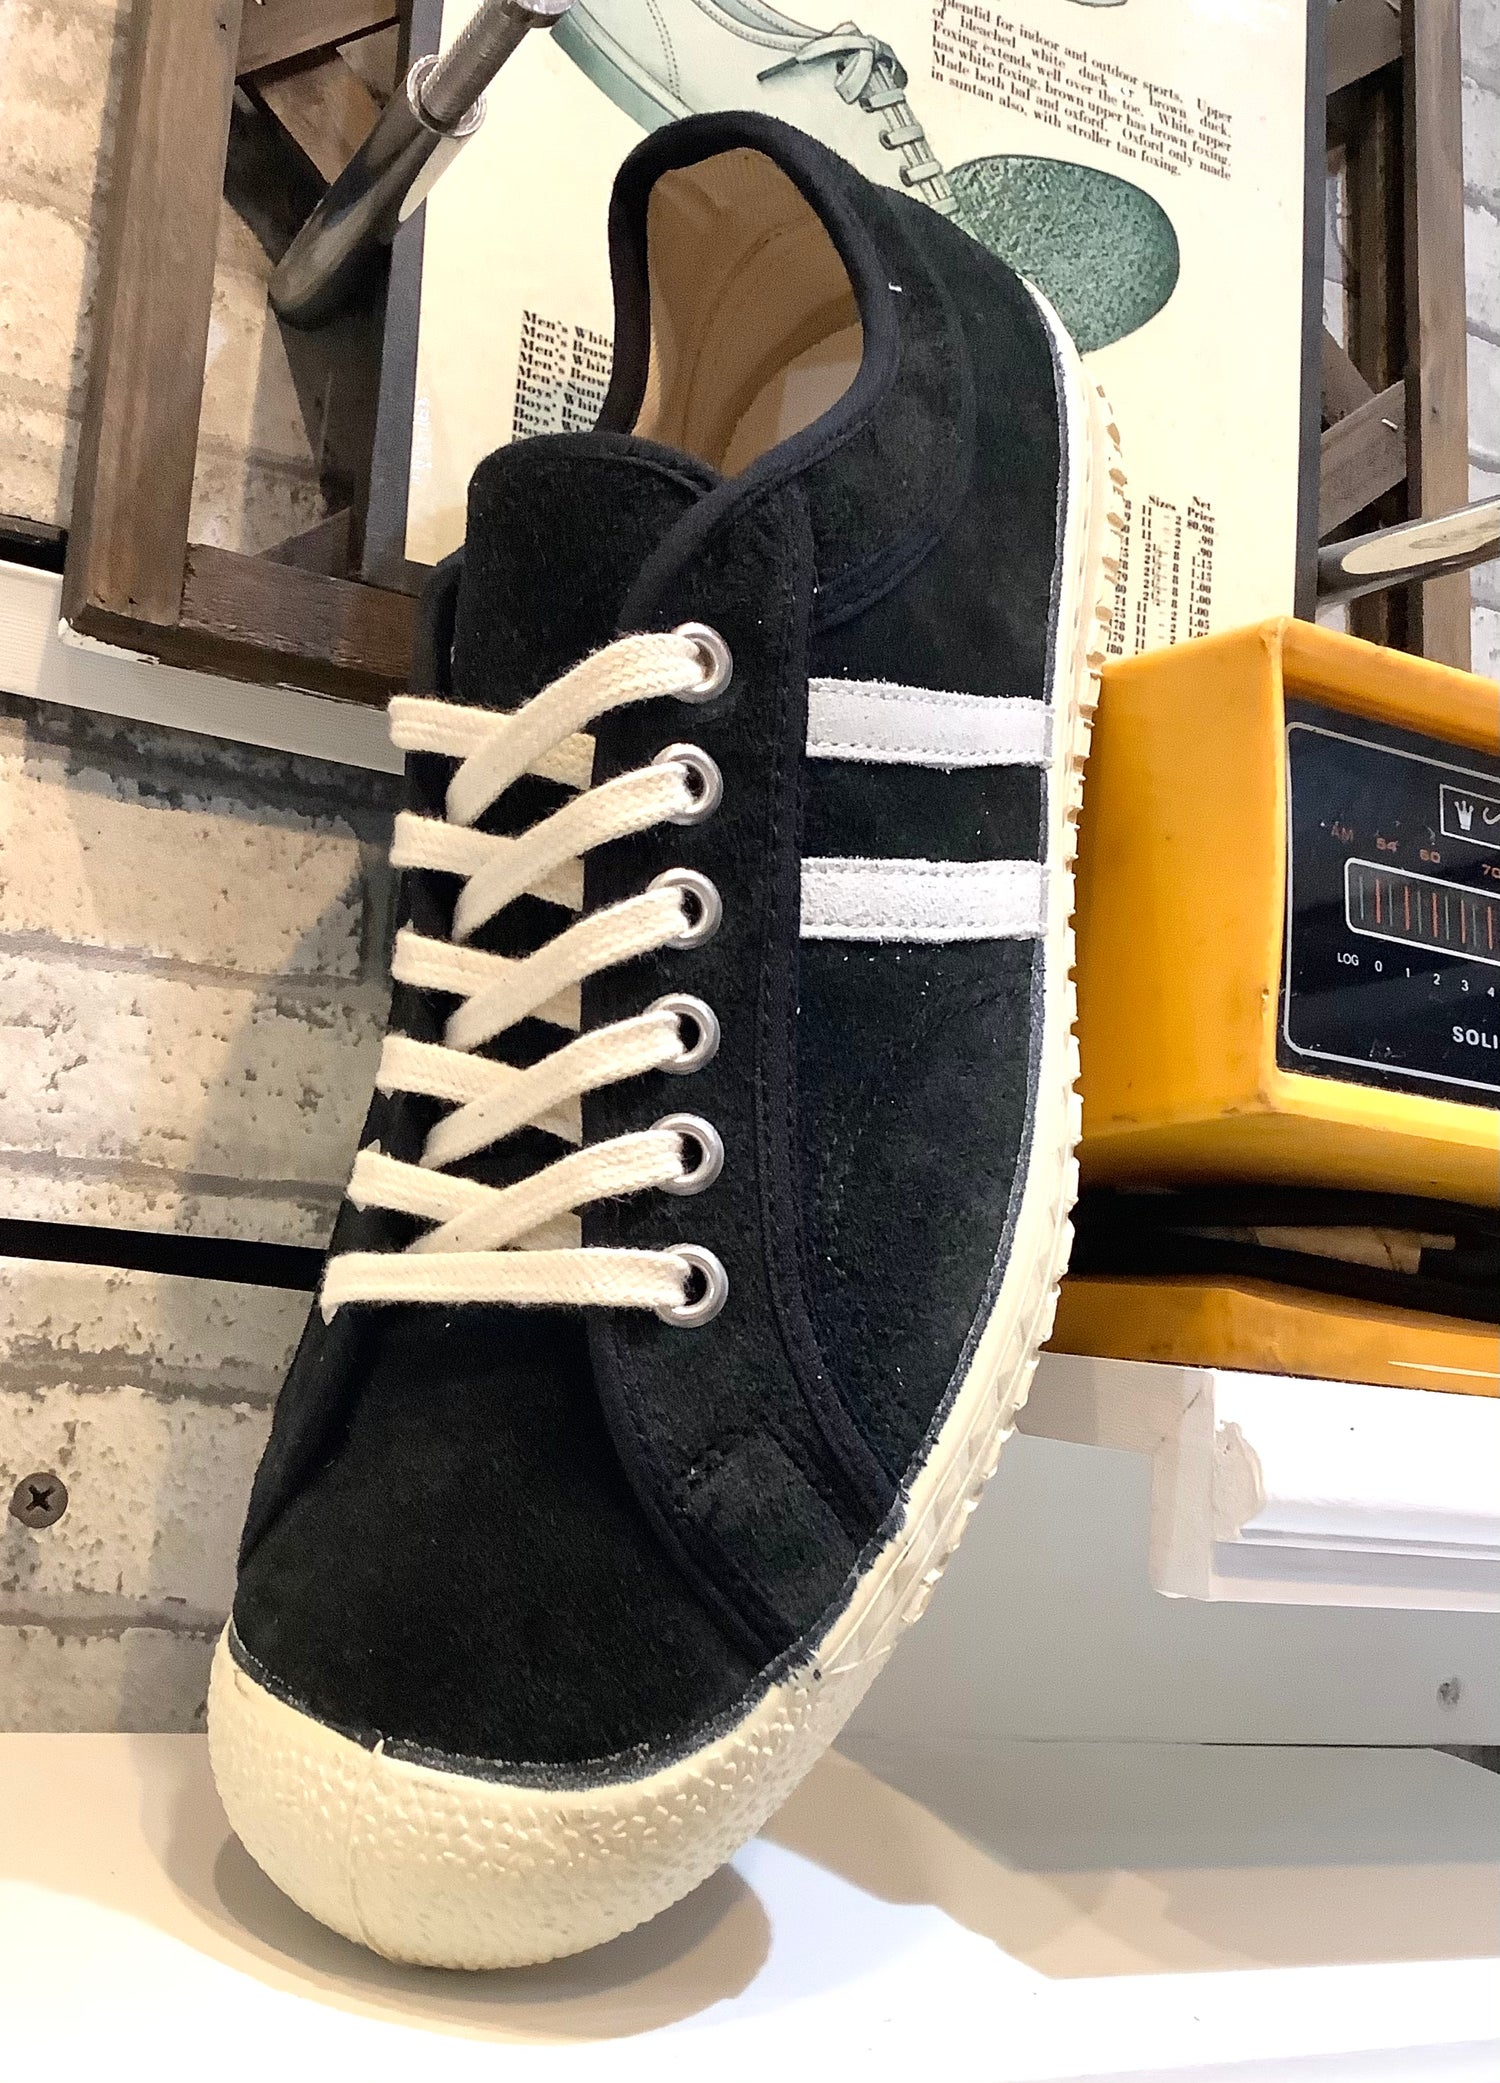 Image of Inn-stant suede lo top black sneaker shoes made in Slovakia